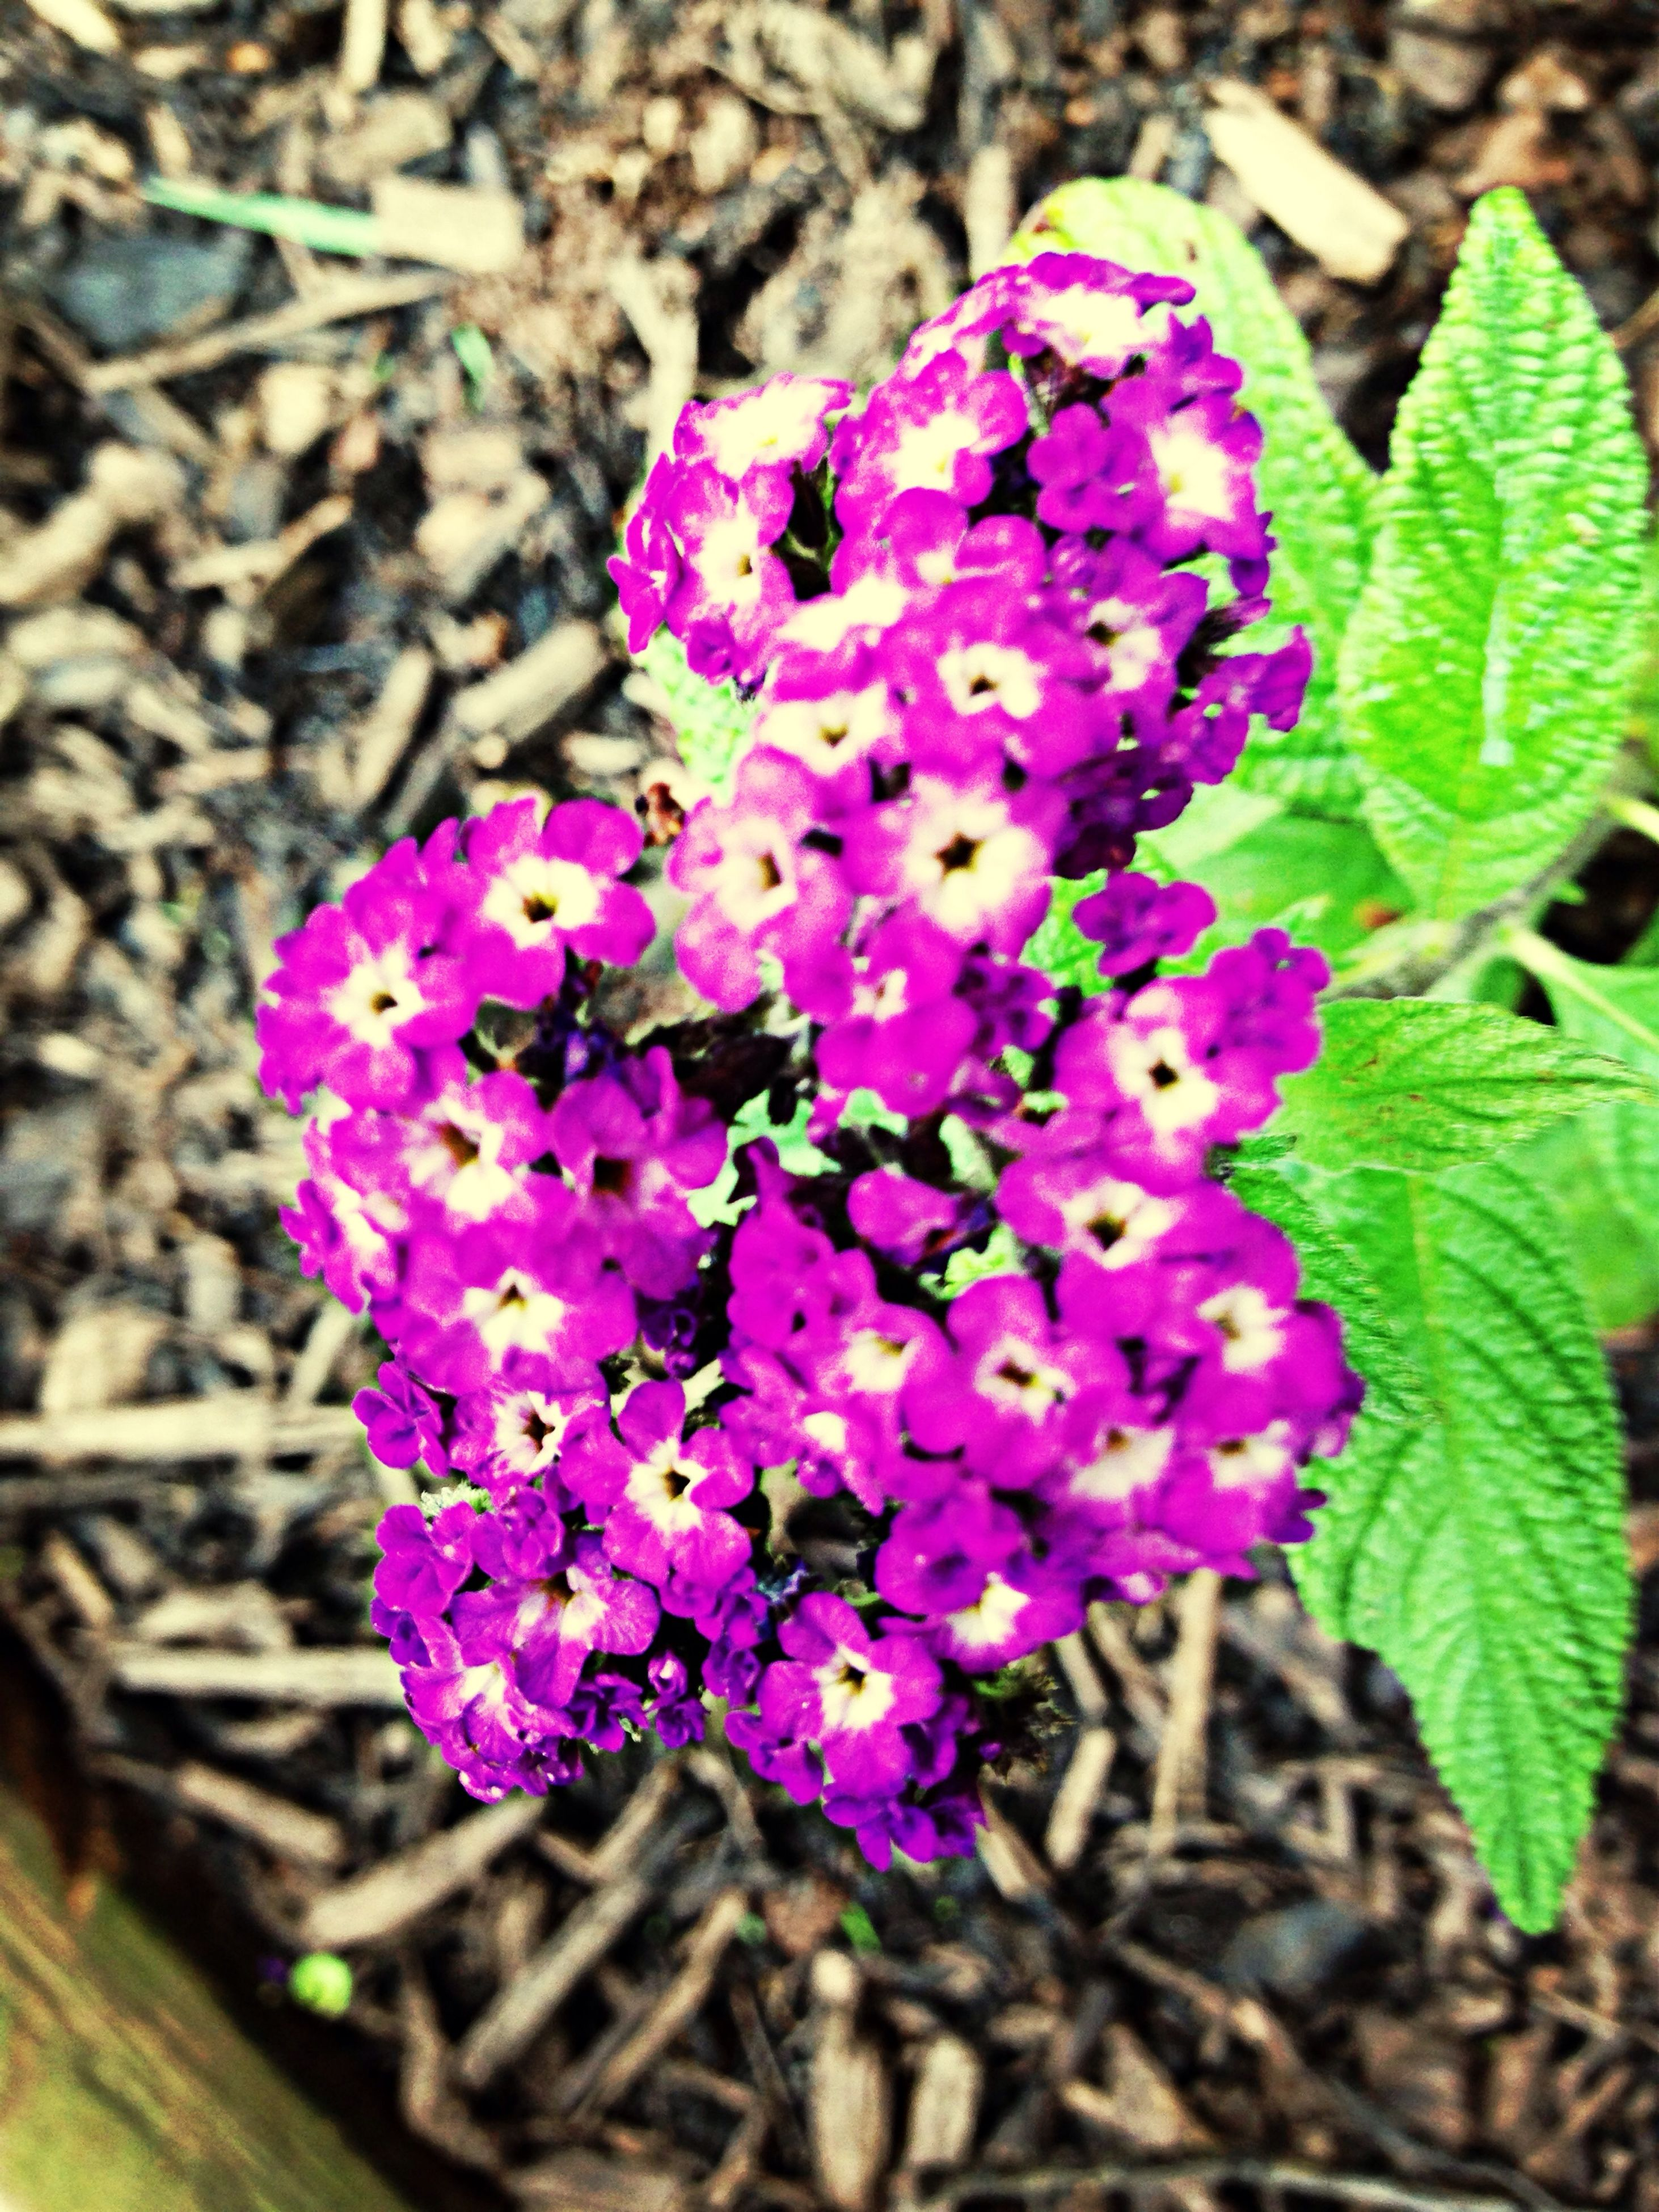 flower, purple, freshness, fragility, growth, petal, beauty in nature, flower head, close-up, plant, blooming, nature, focus on foreground, leaf, high angle view, in bloom, pink color, springtime, blossom, botany